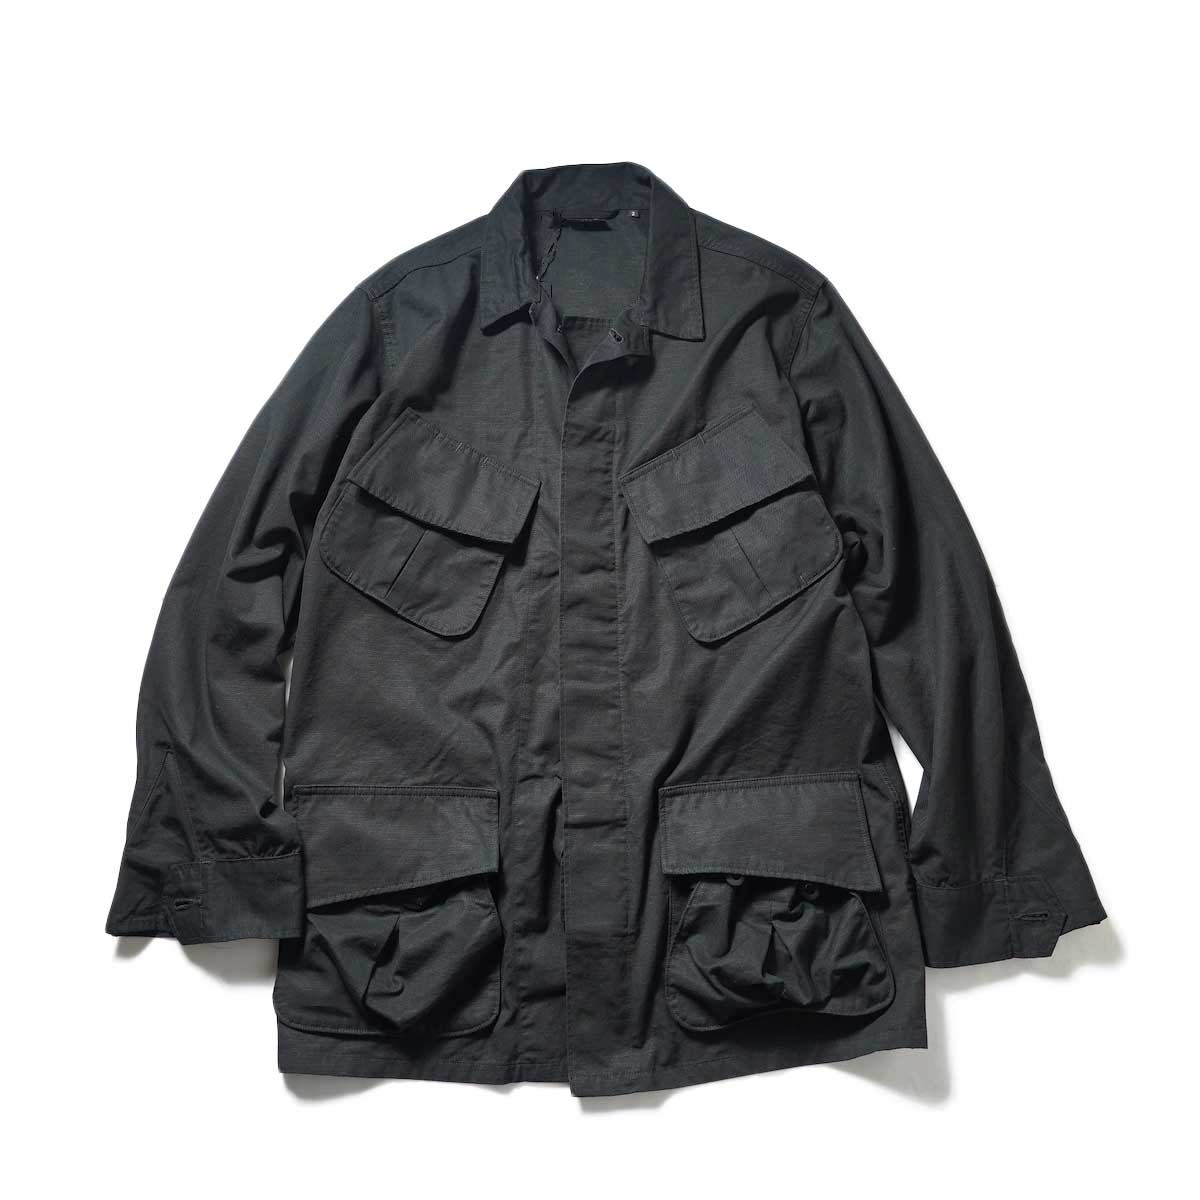 orSlow / US Army Tropical Jacket (Black Rip Stop)